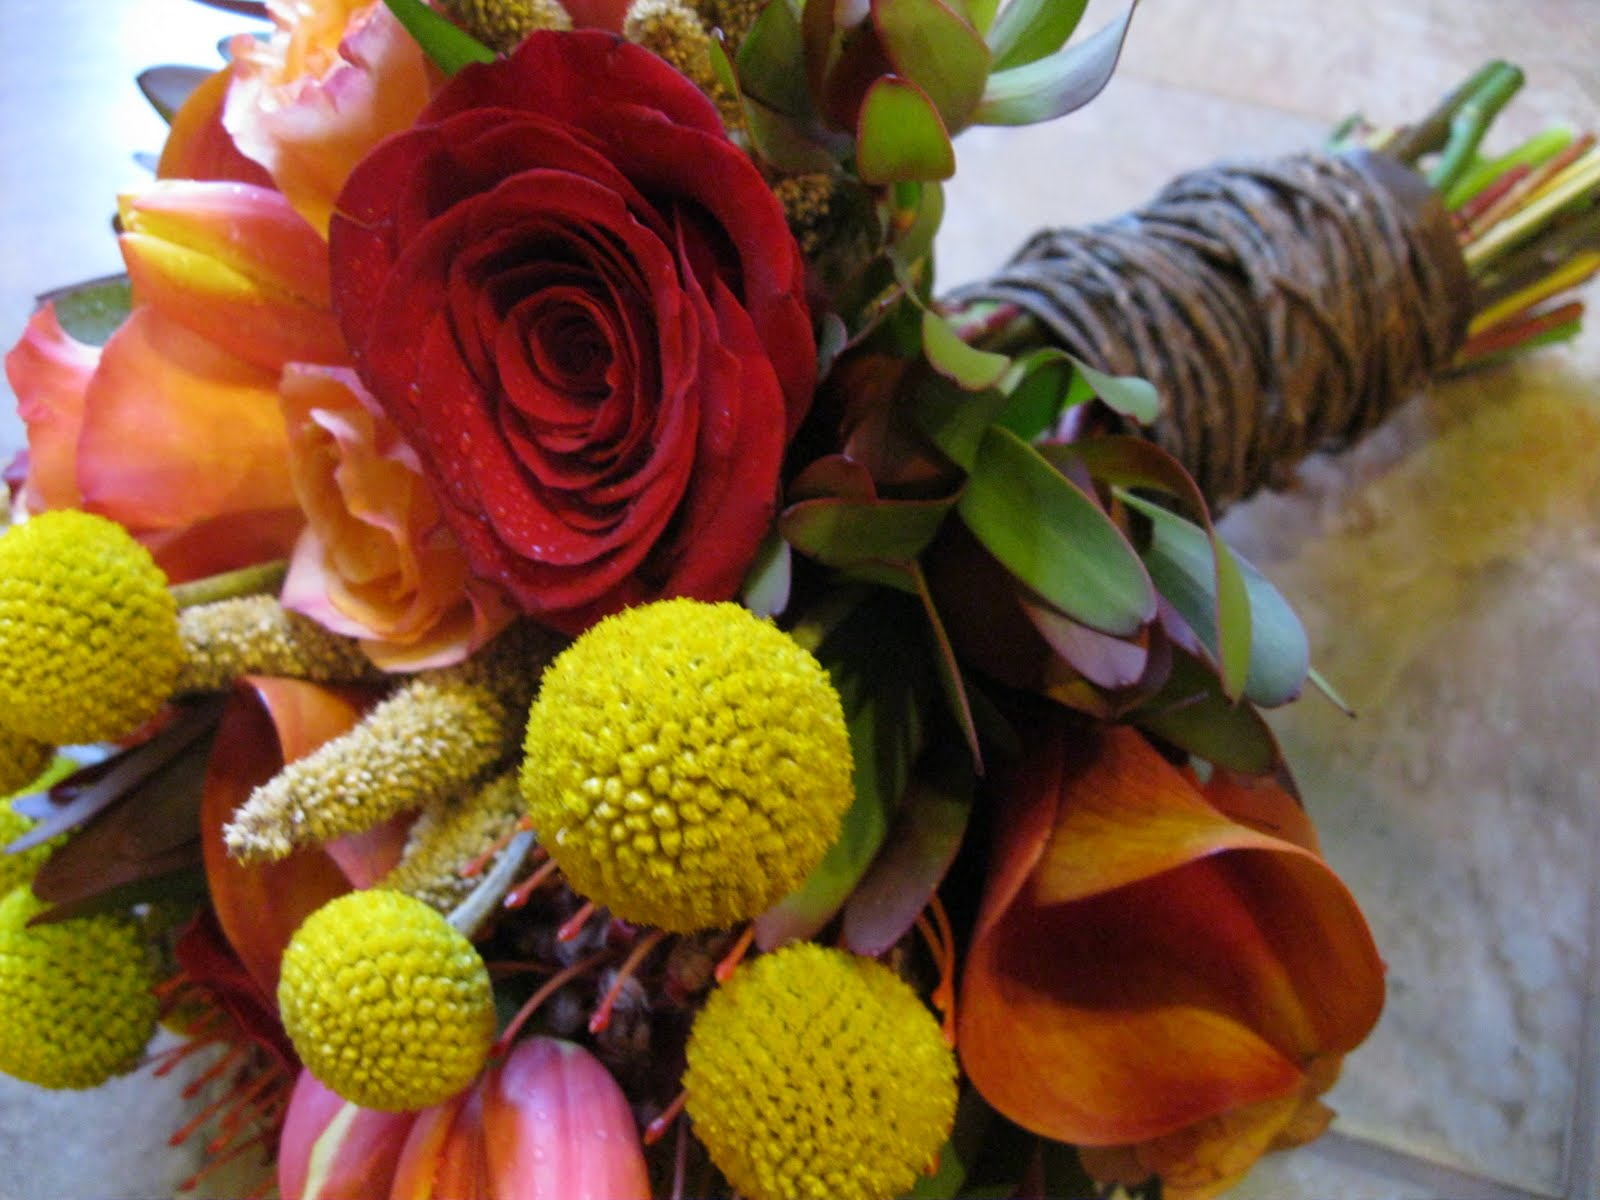 Flowers by shirley garden rose bouquets - We Called This Large European Hand Tie Bouquet Rustic Chic It Is Made Of Melva And Freedom Roses Dutch Orange Red Tulips Leukedendron Orange Protea